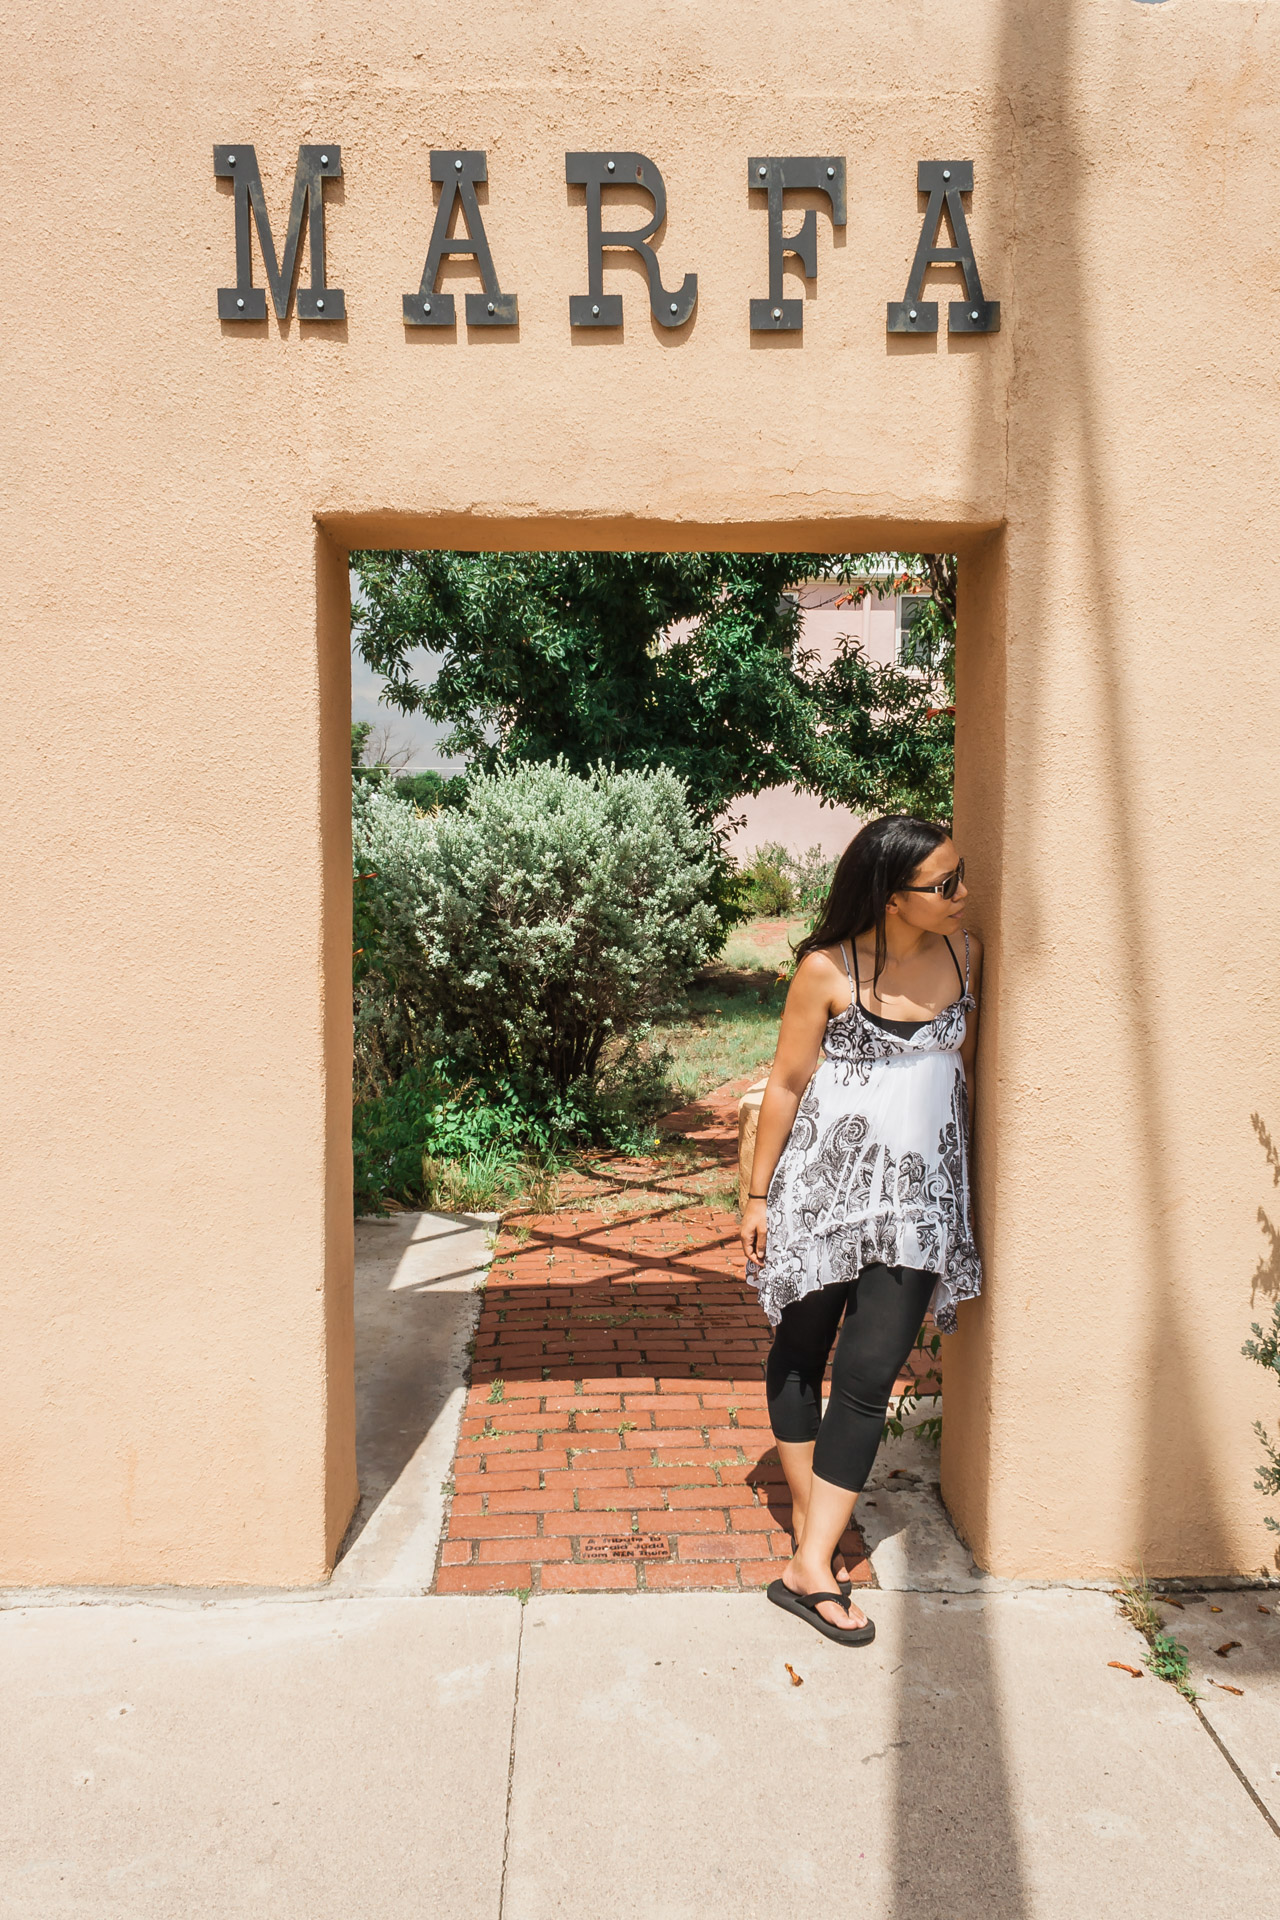 Behind The Road Trip Photos (vertical marfa)